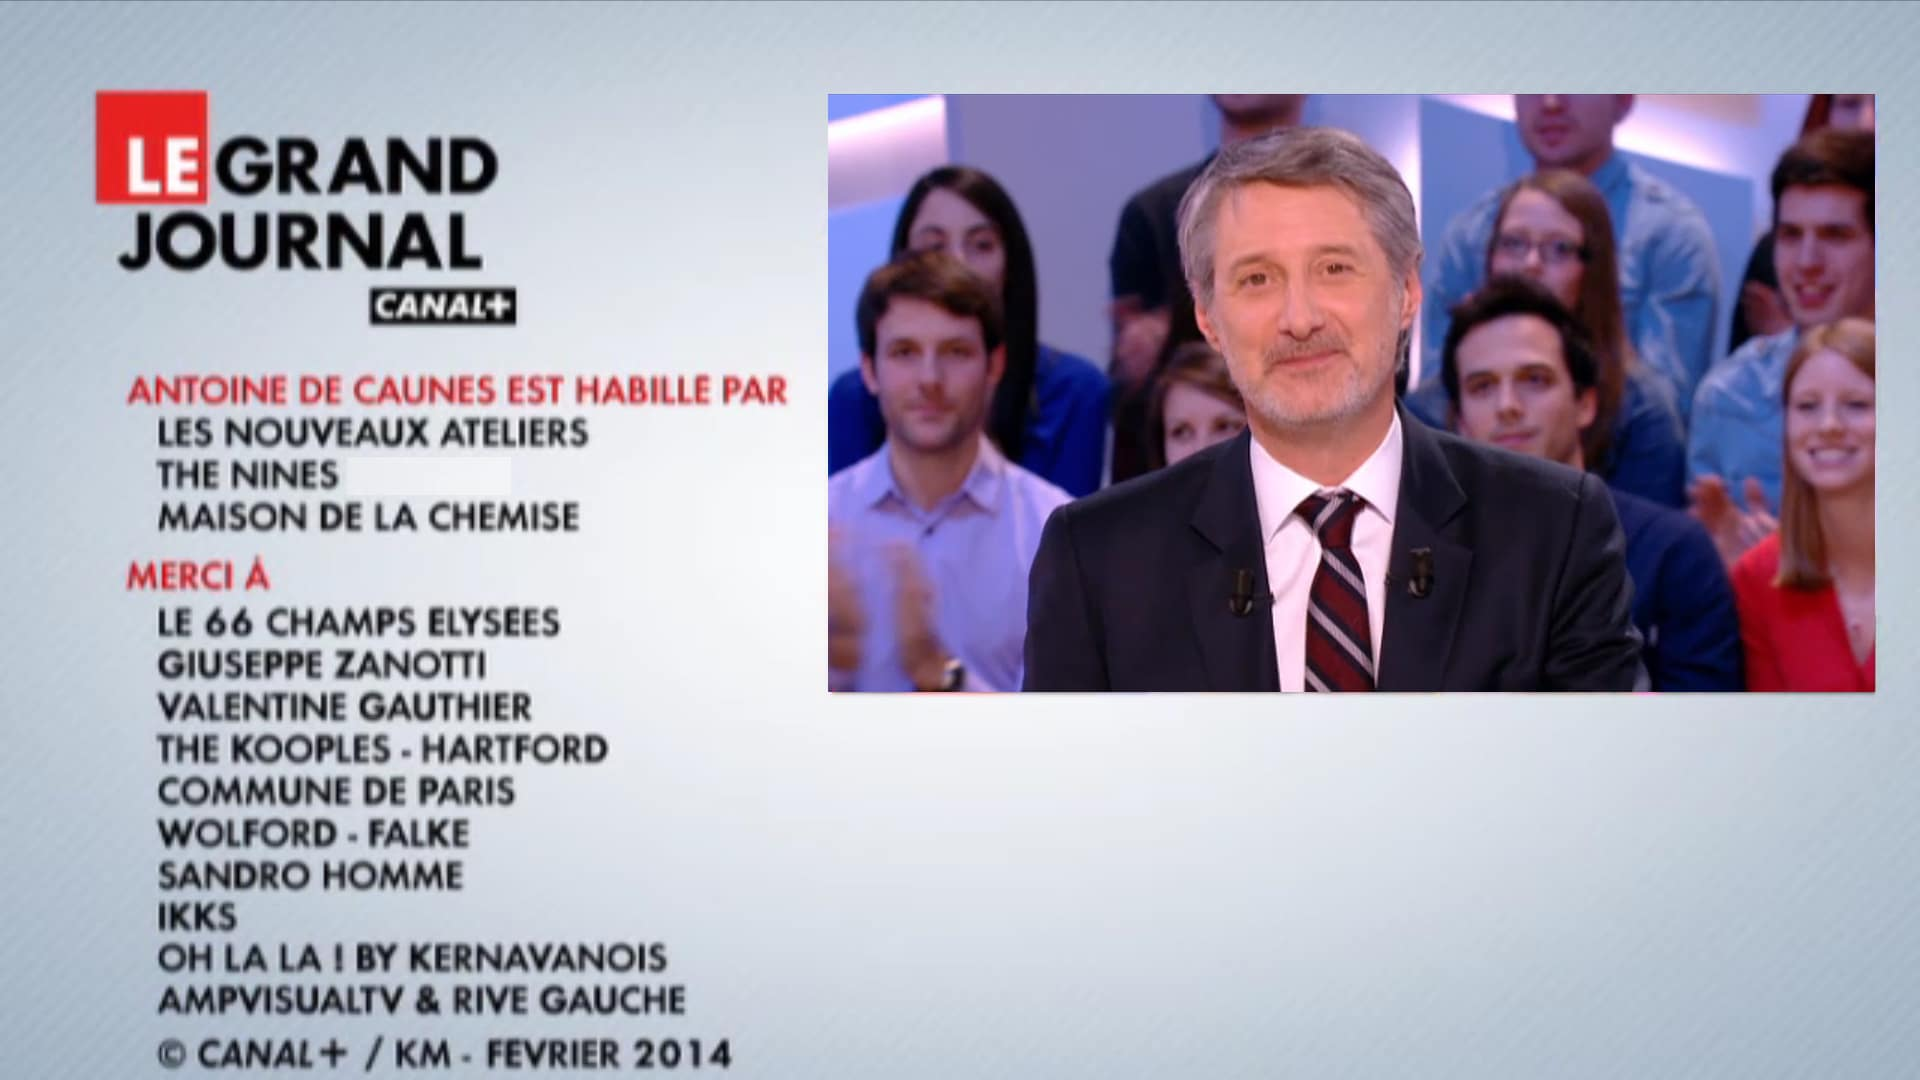 Le Grand Journal Antoine de Caunes